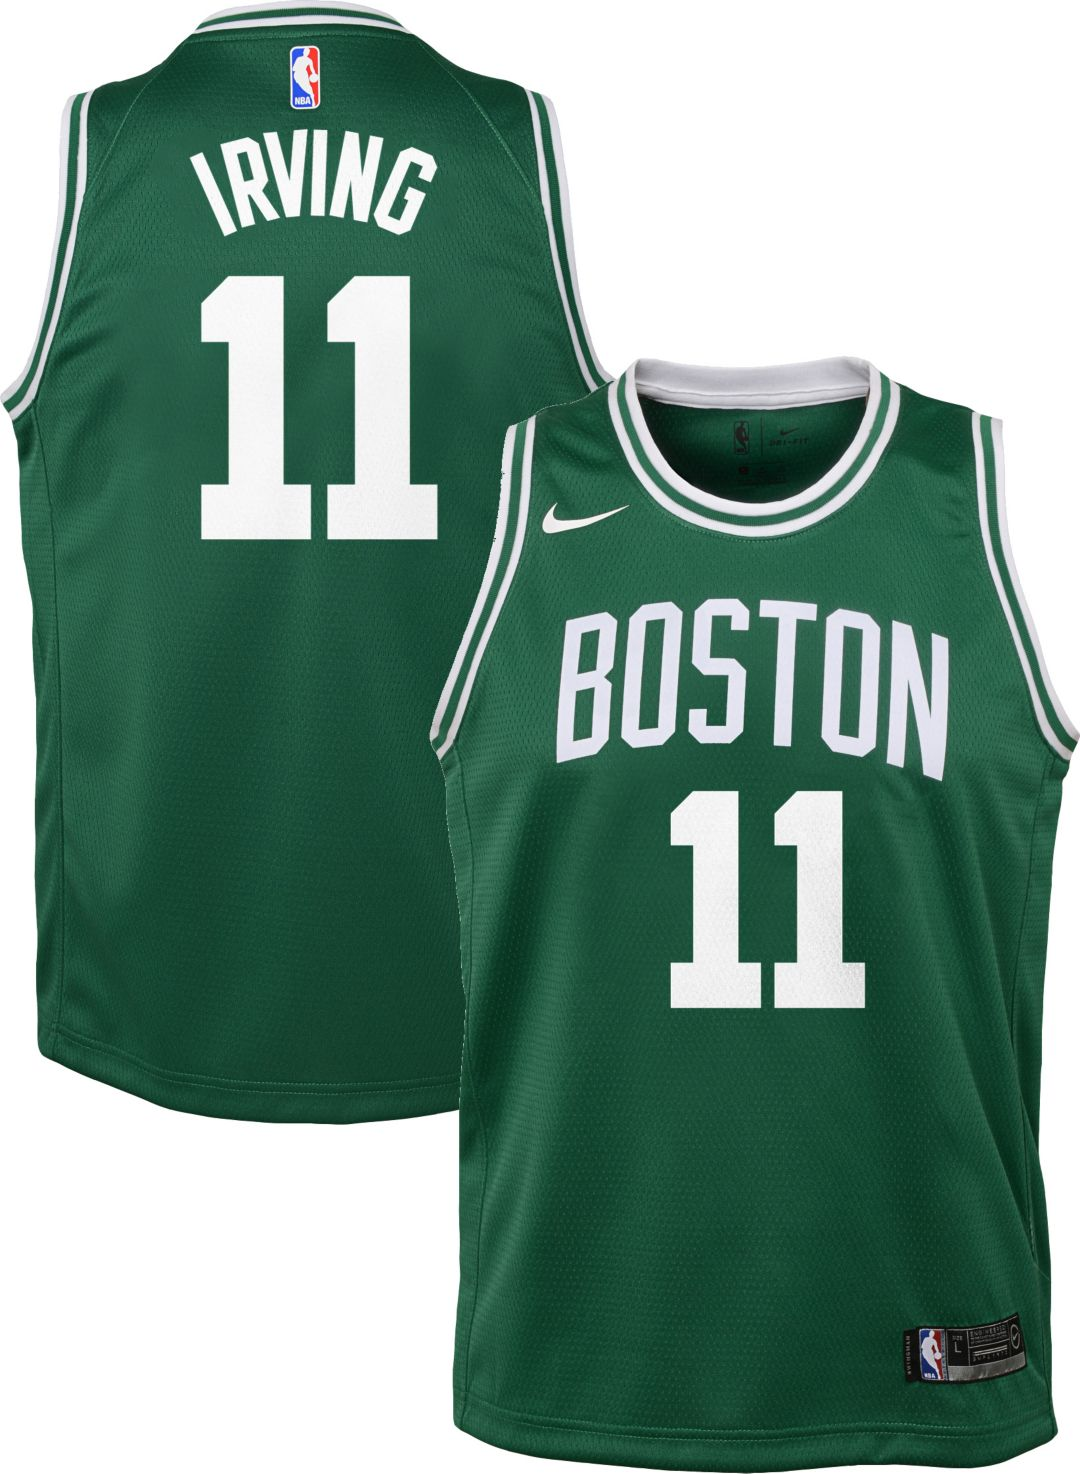 finest selection 460f9 12026 Nike Youth Boston Celtics Kyrie Irving #11 Kelly Green Dri-FIT Swingman  Jersey